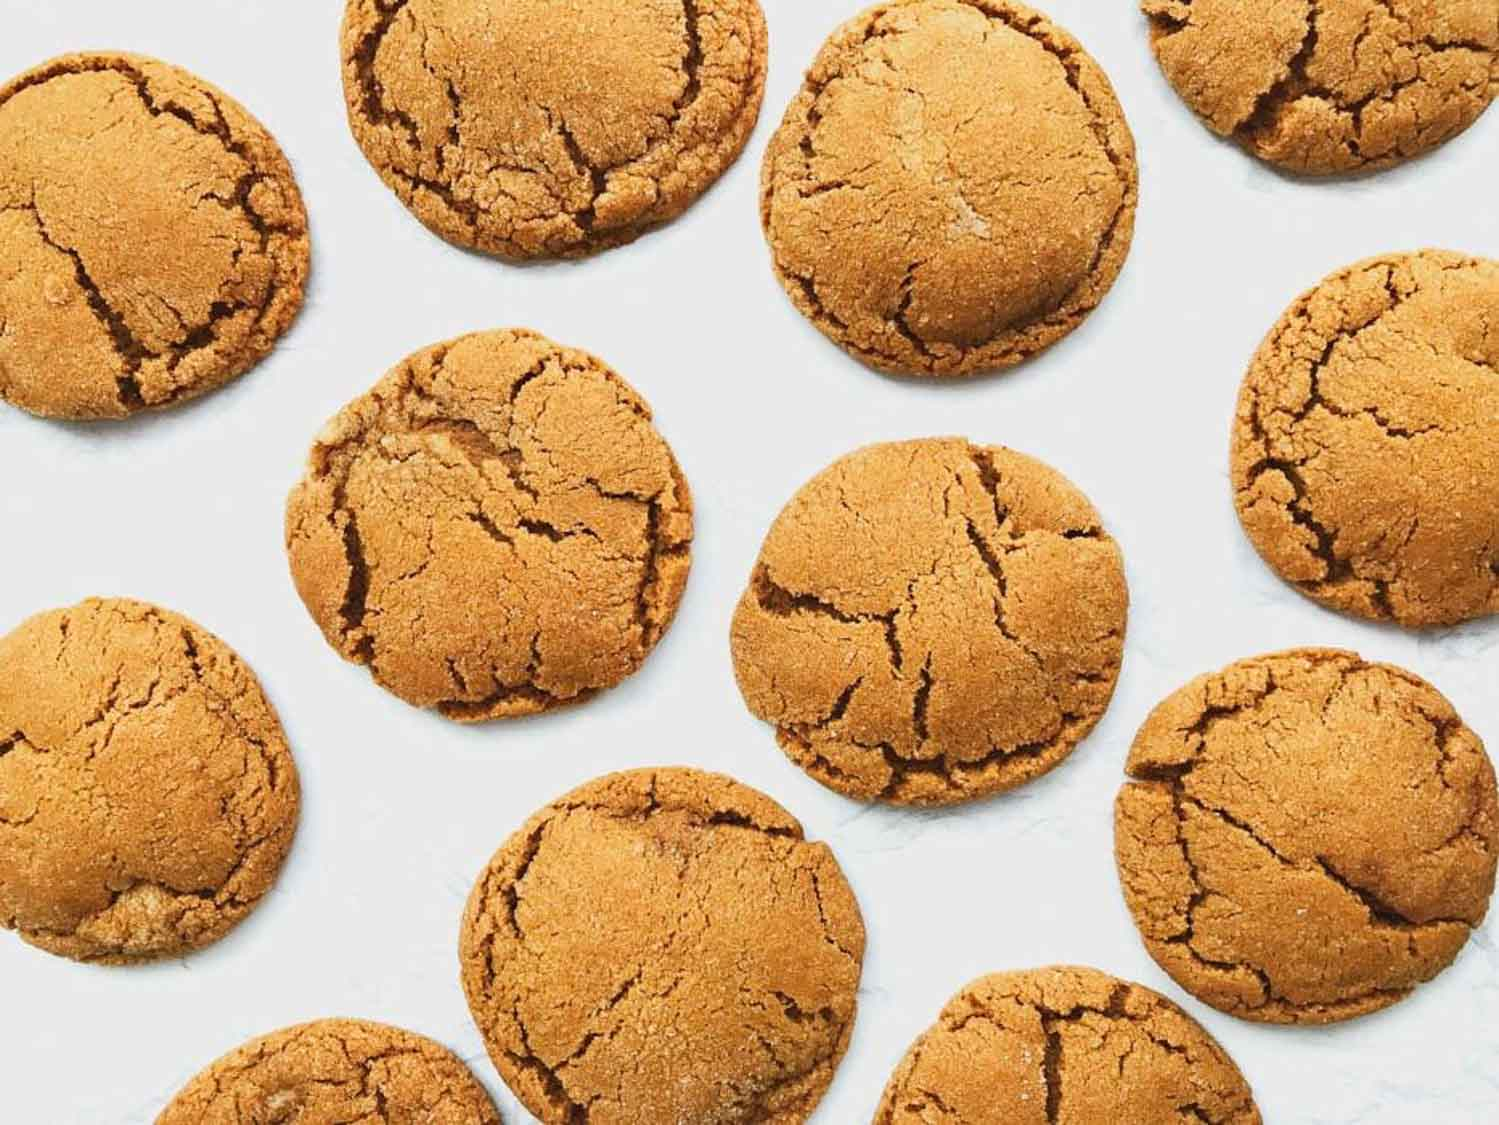 A white background with ginger molasses cookies on it.